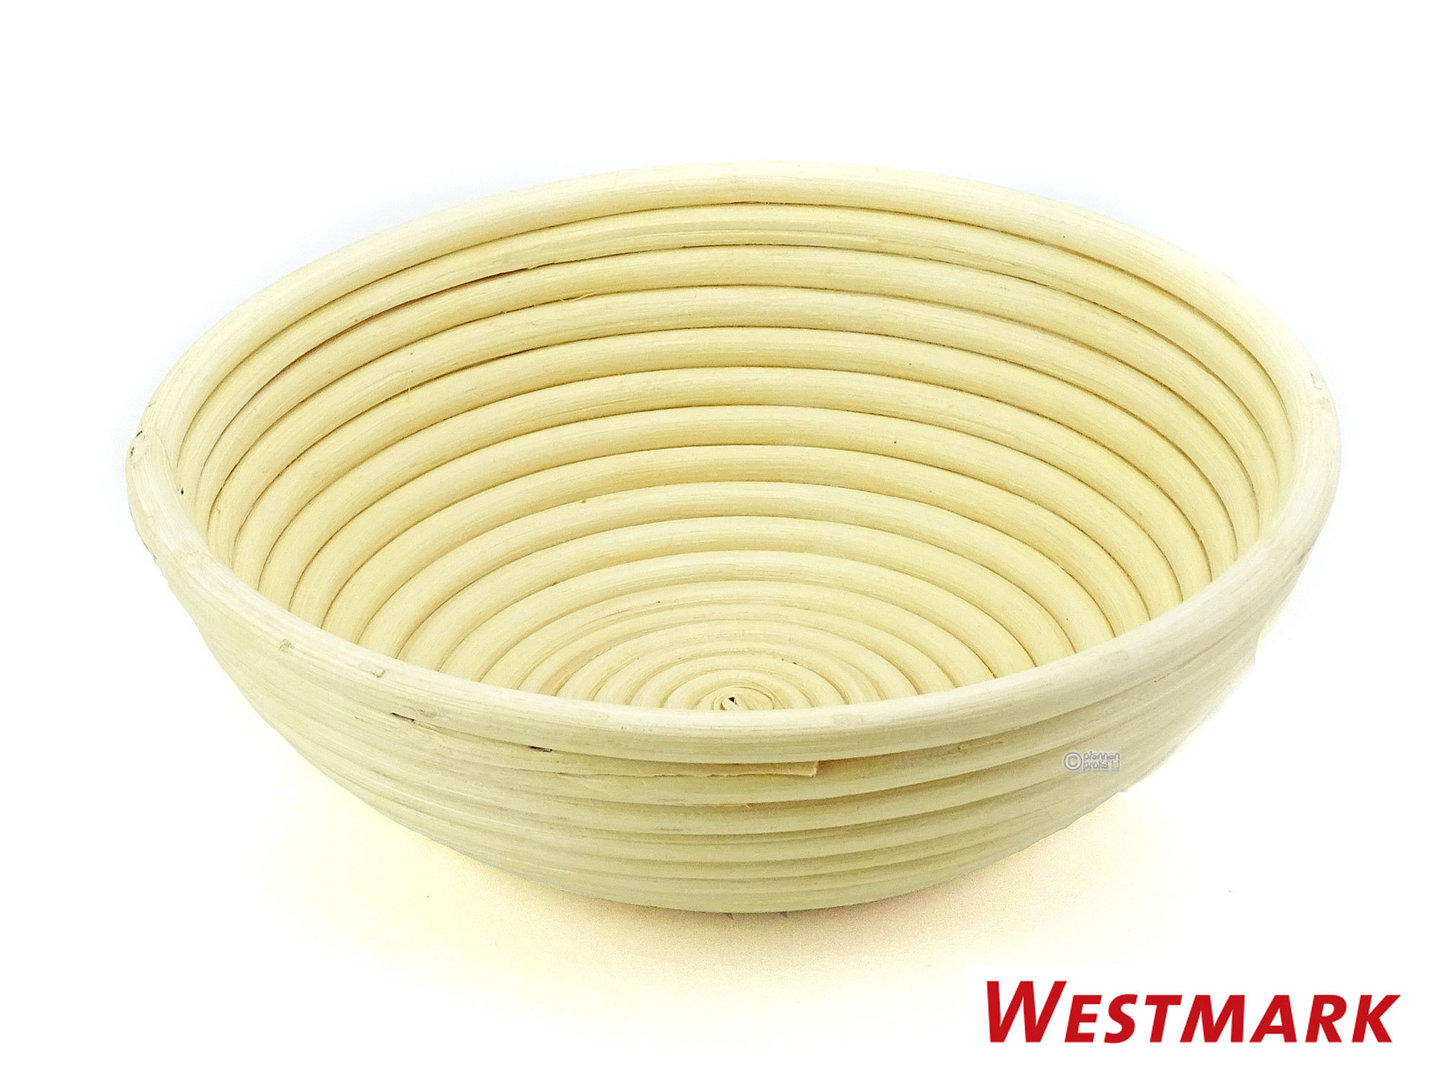 WESTMARK proofing basket round large